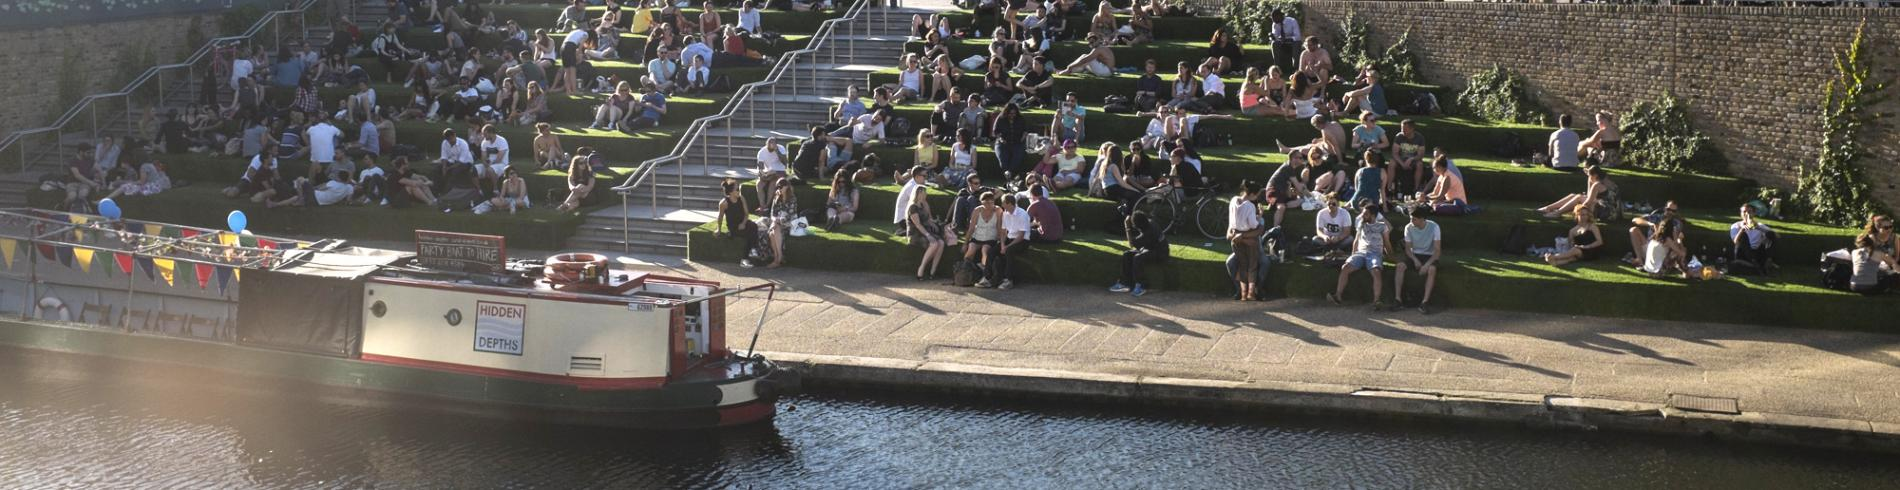 People sitting on the steps down to the canal at Granary Square